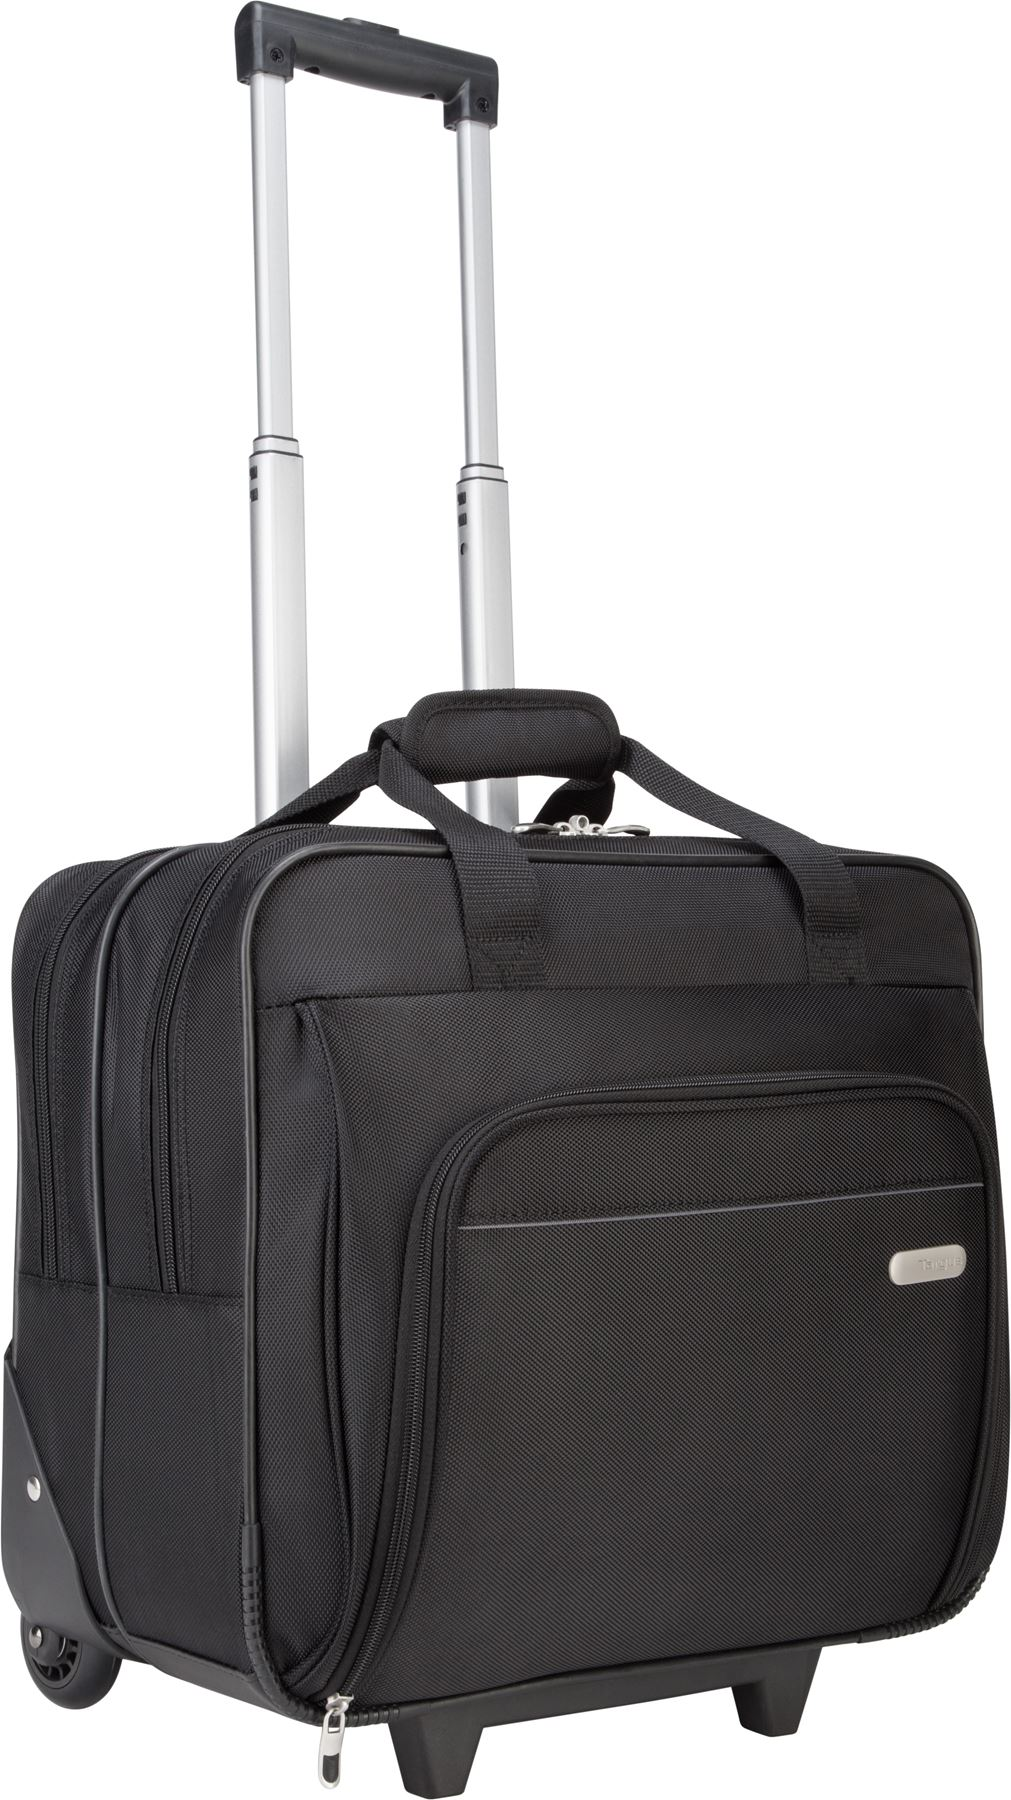 Swiss Military Laptop Trolley Roller Bag in Bangalore